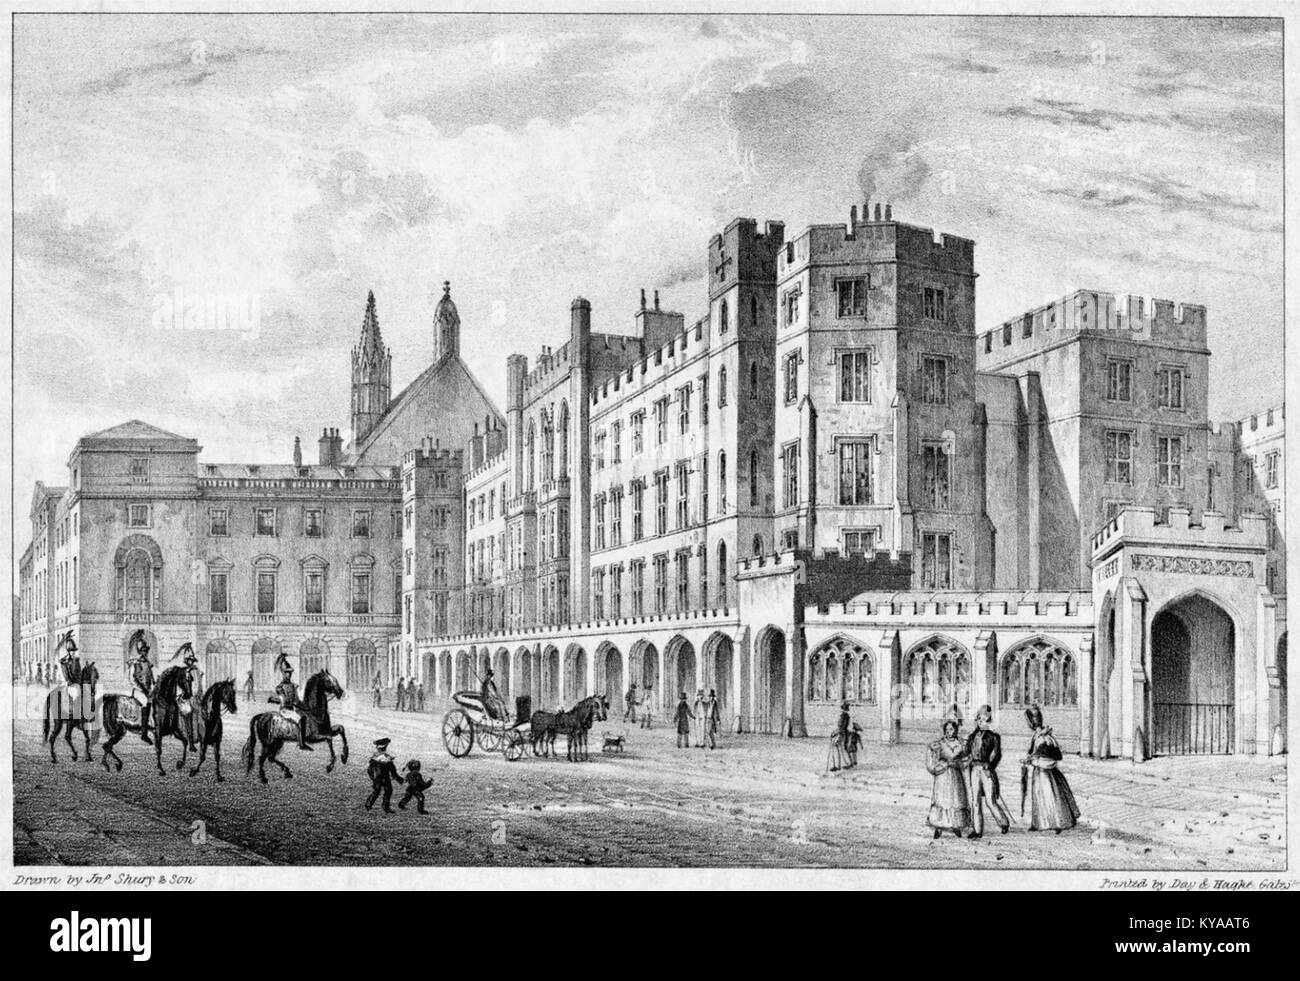 Print of Houses of Parliament before 1834 Fire - Stock Image